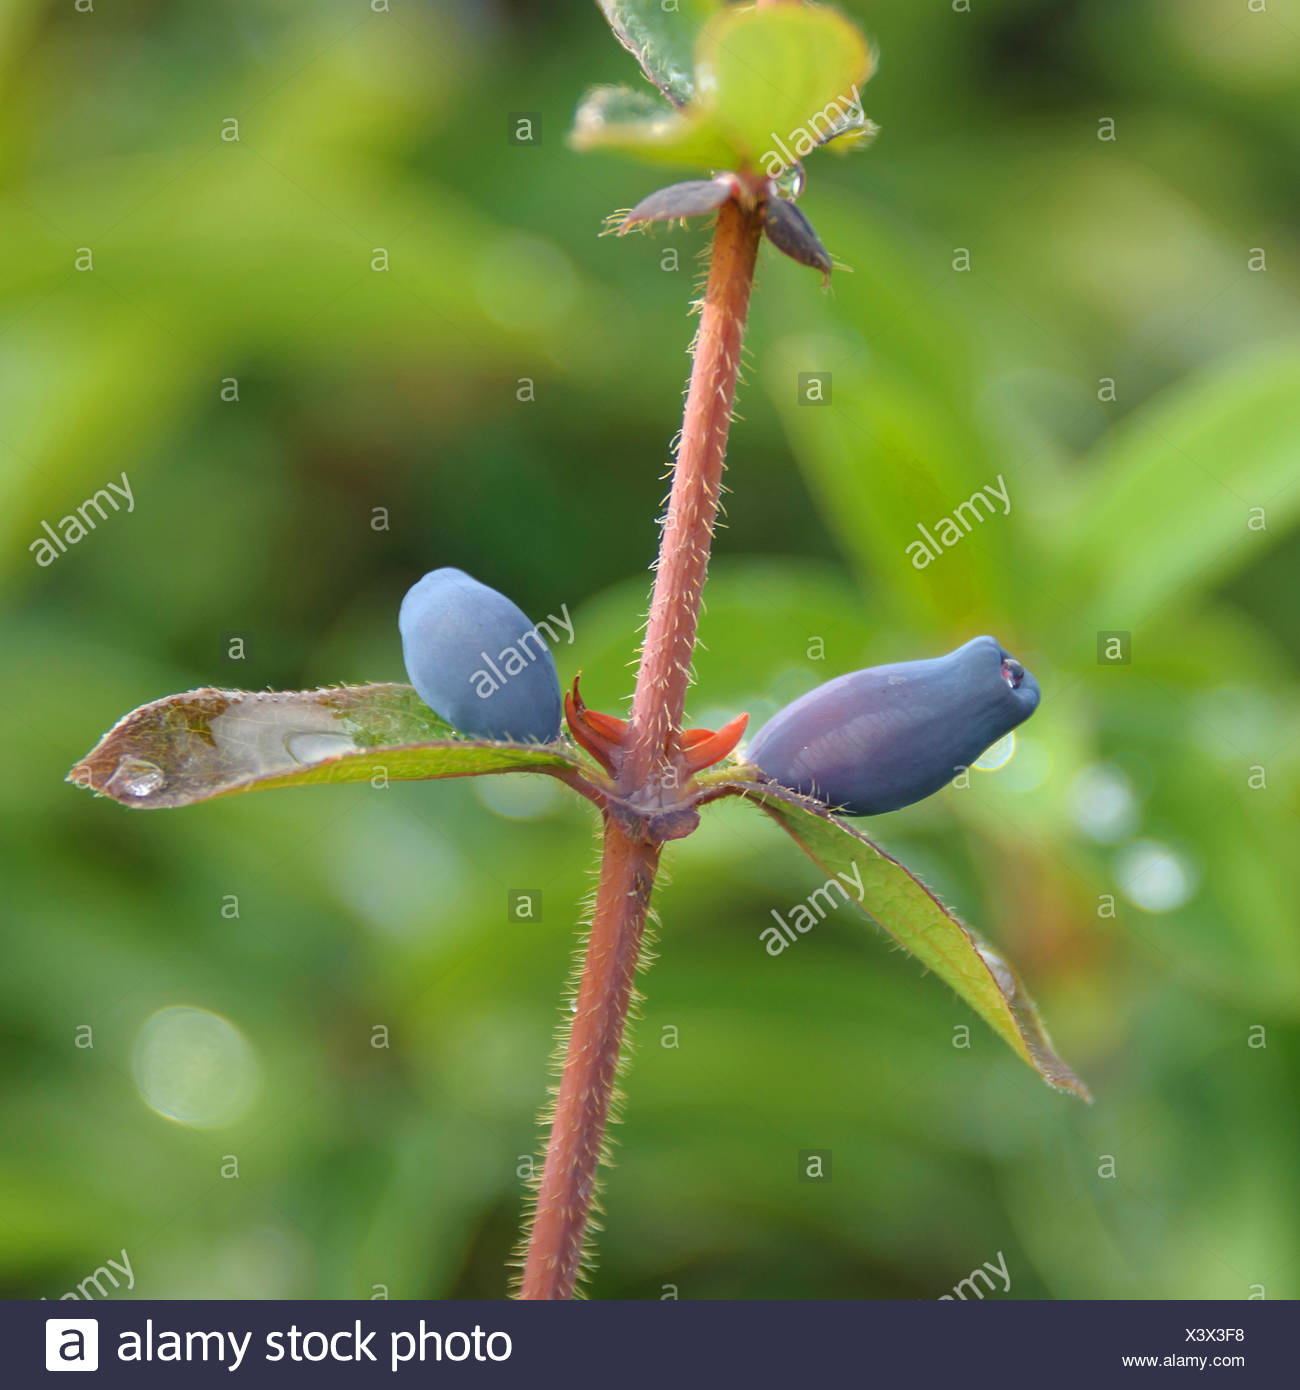 blue-berried honeysuckle, bluefly honeysuckle, sweetberry honeysuckle (Lonicera caerulea 'Balalaika', Lonicera caerulea Balalaika), fruits of cultivar Balalaika, Germany - Stock Image